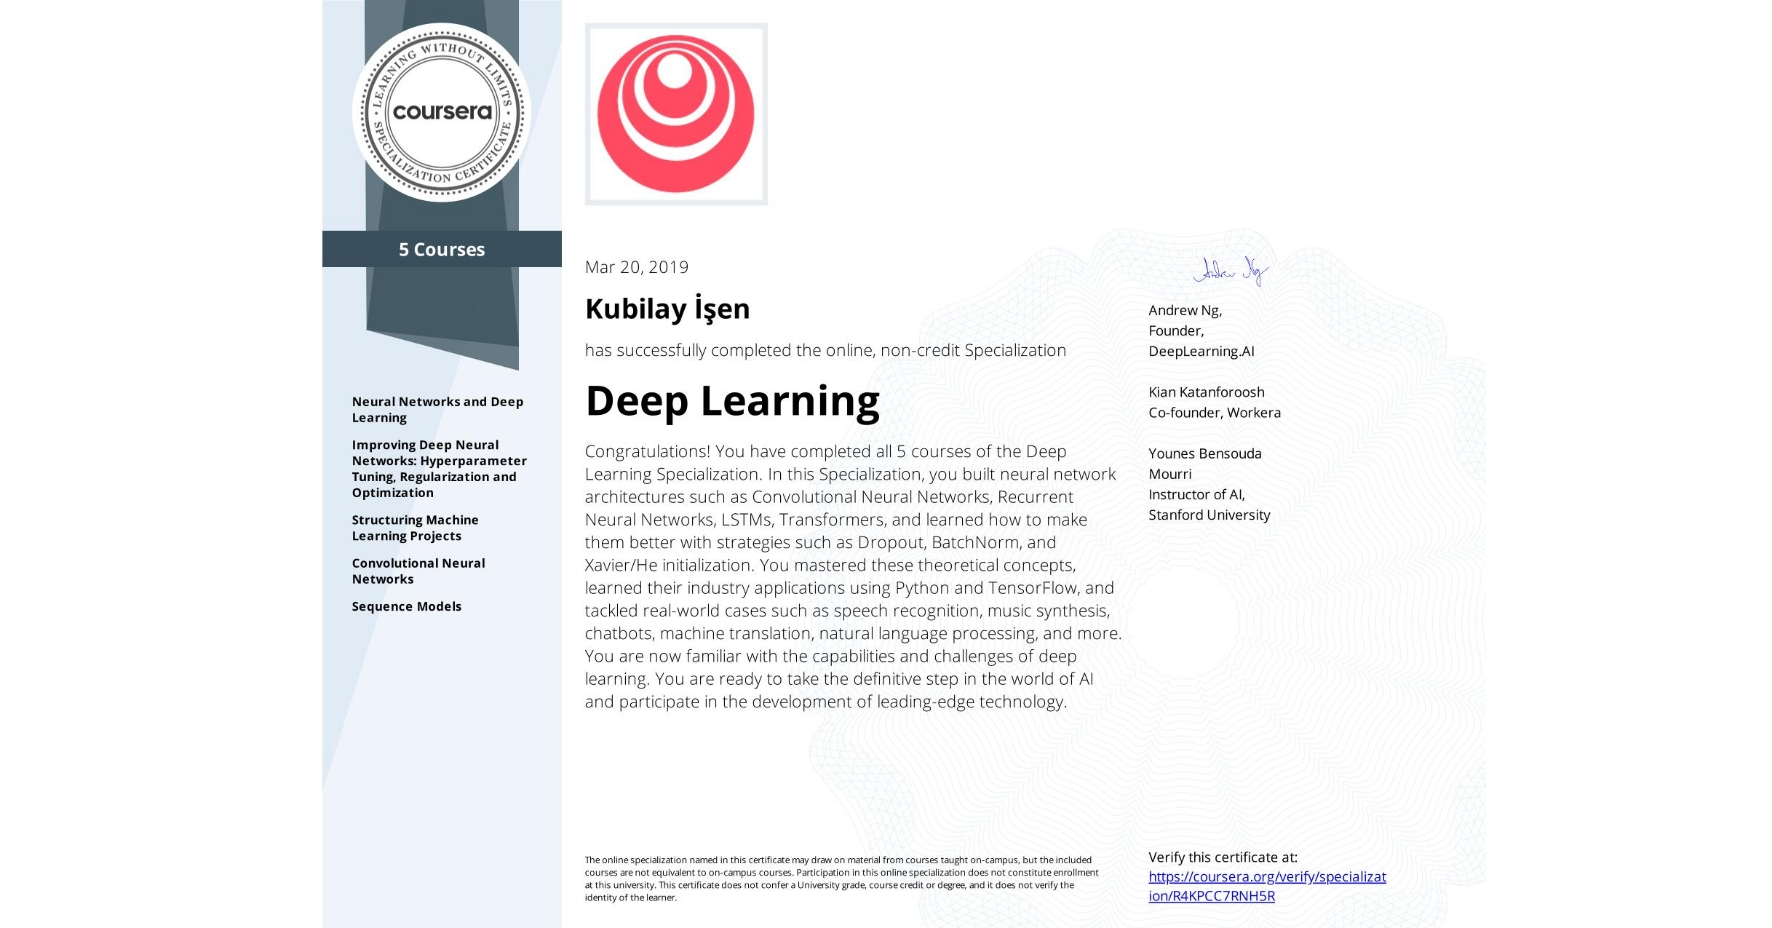 View certificate for Kubilay İşen, Deep Learning, offered through Coursera. The Deep Learning Specialization is designed to prepare learners to participate in the development of cutting-edge AI technology, and to understand the capability, the challenges, and the consequences of the rise of deep learning. Through five interconnected courses, learners develop a profound knowledge of the hottest AI algorithms, mastering deep learning from its foundations (neural networks) to its industry applications (Computer Vision, Natural Language Processing, Speech Recognition, etc.).